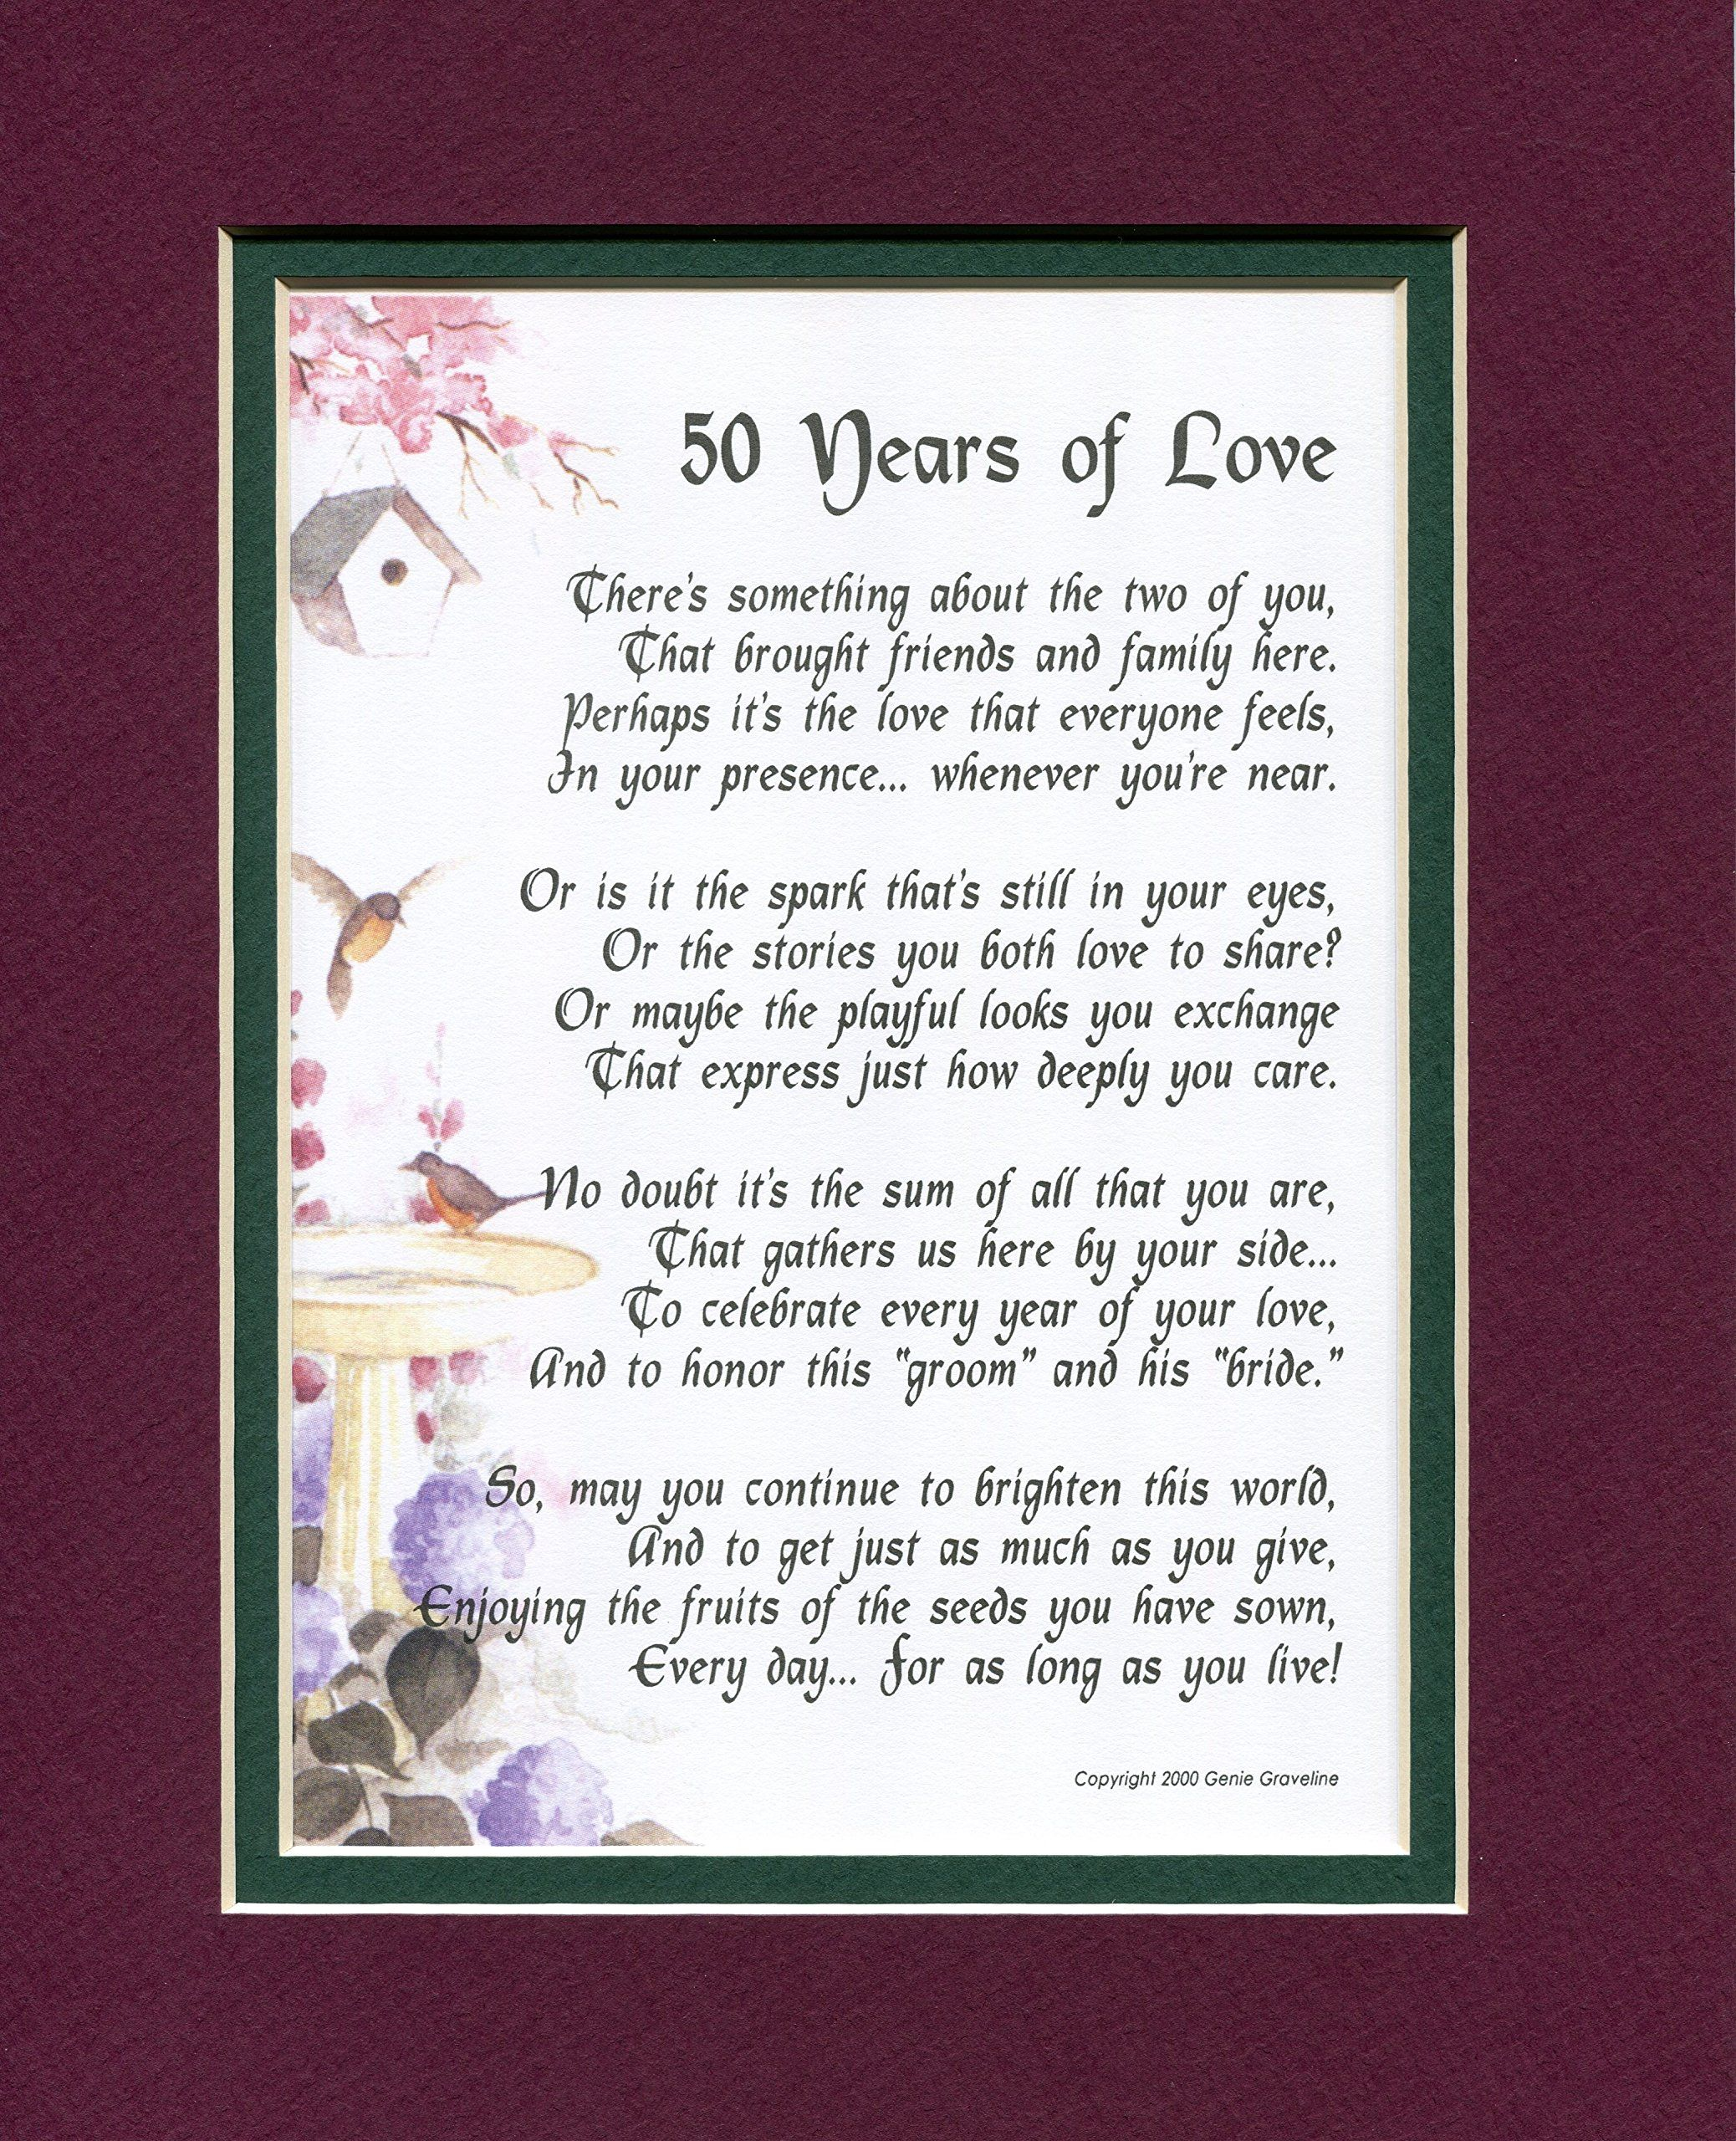 Years of love touching poem a gift for th